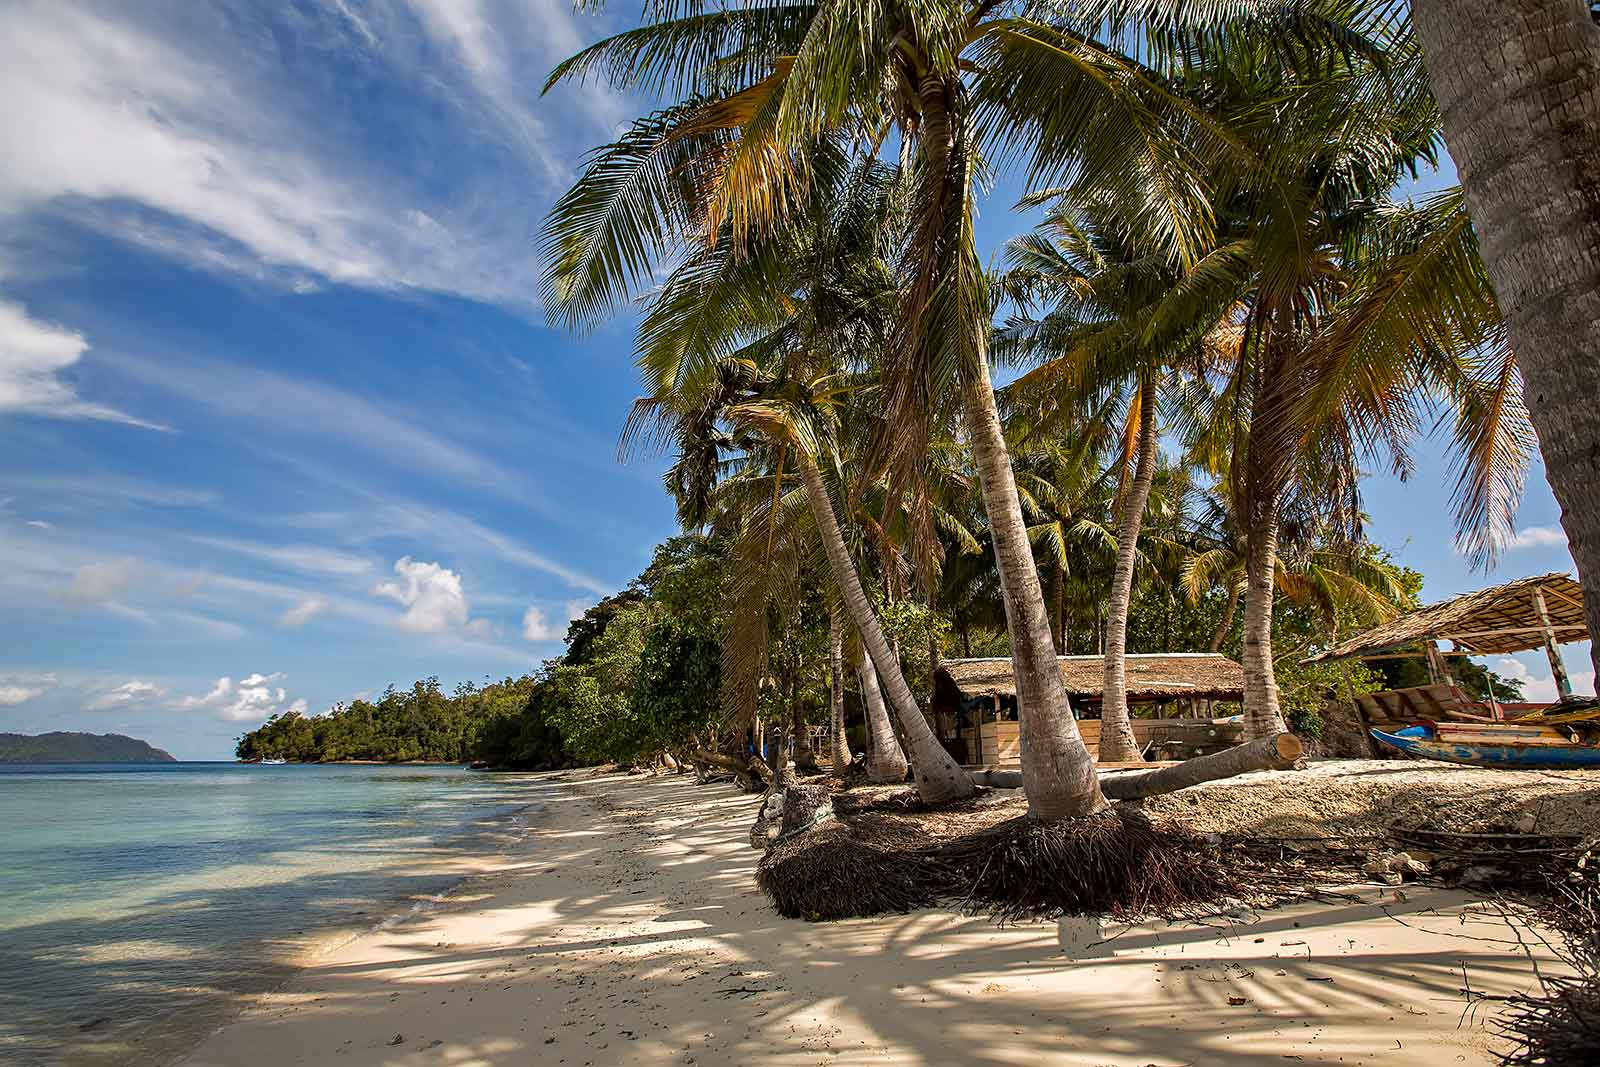 is an excellent place. Indonesians were unaware of the tsunami until the very first huge wave crashed along the shores.